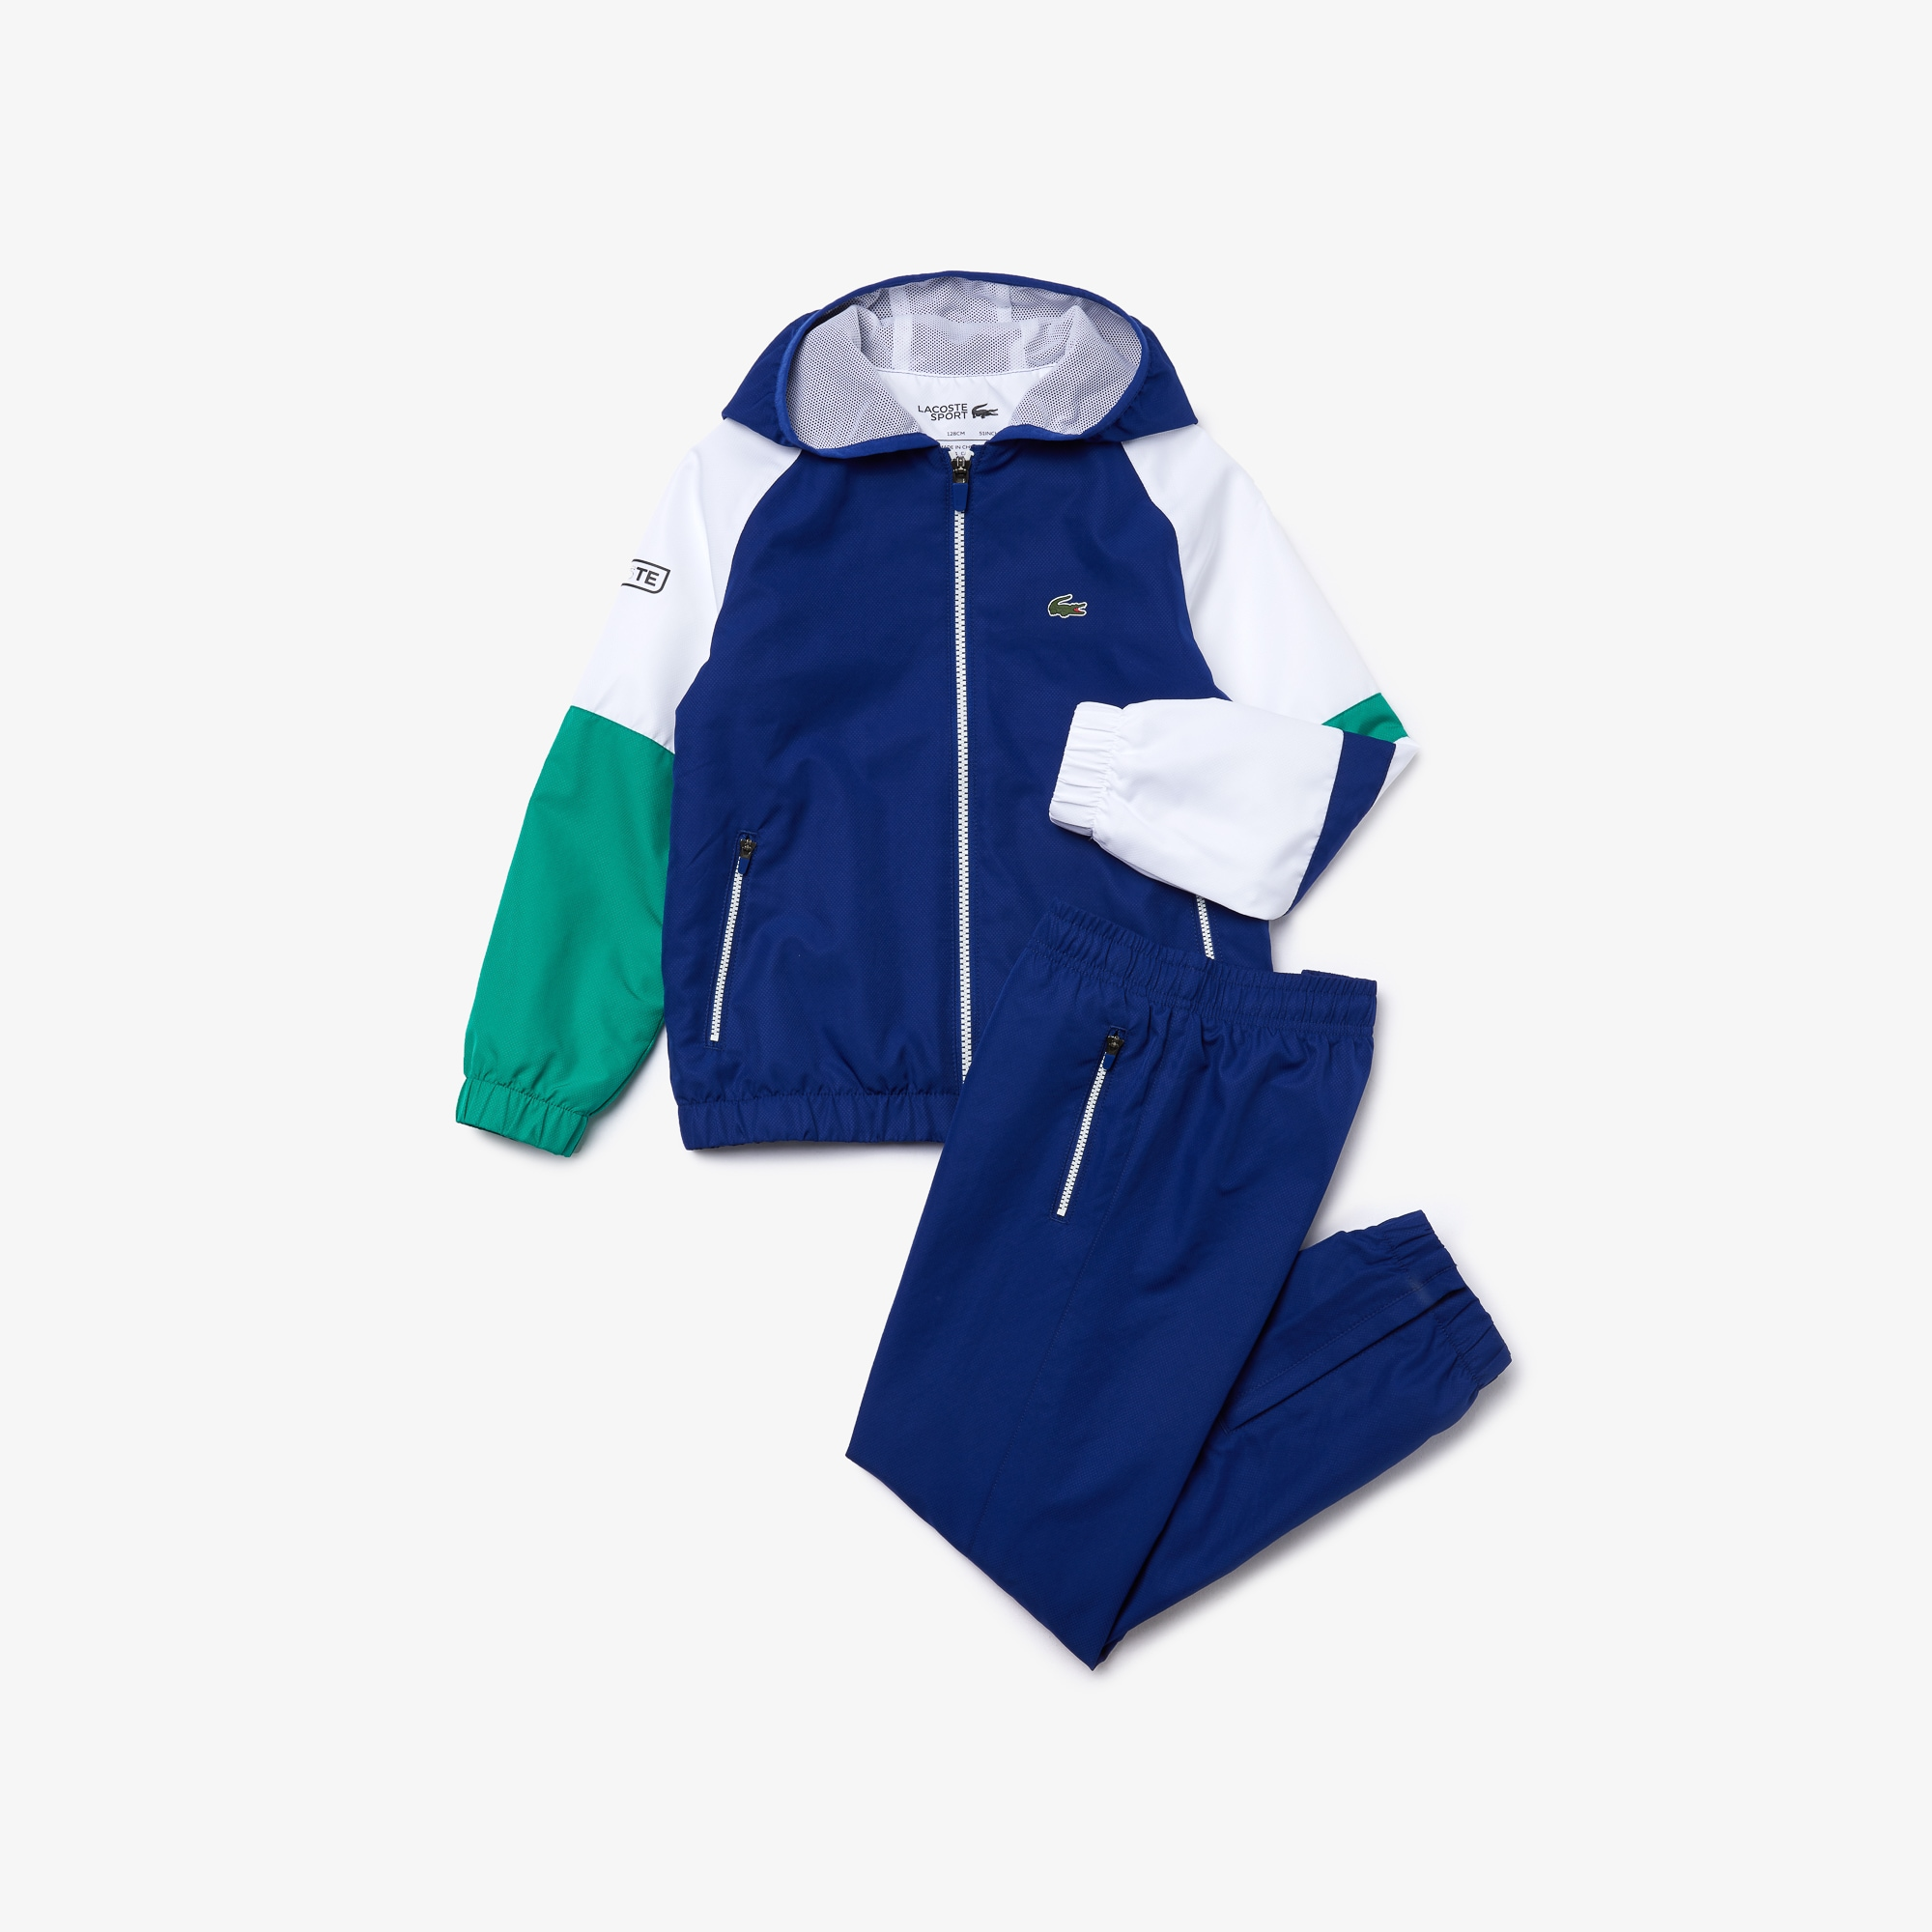 Boys' 라코스테 Lacoste SPORT Hooded Tracksuit,Blue / White / Green / Black • GXP